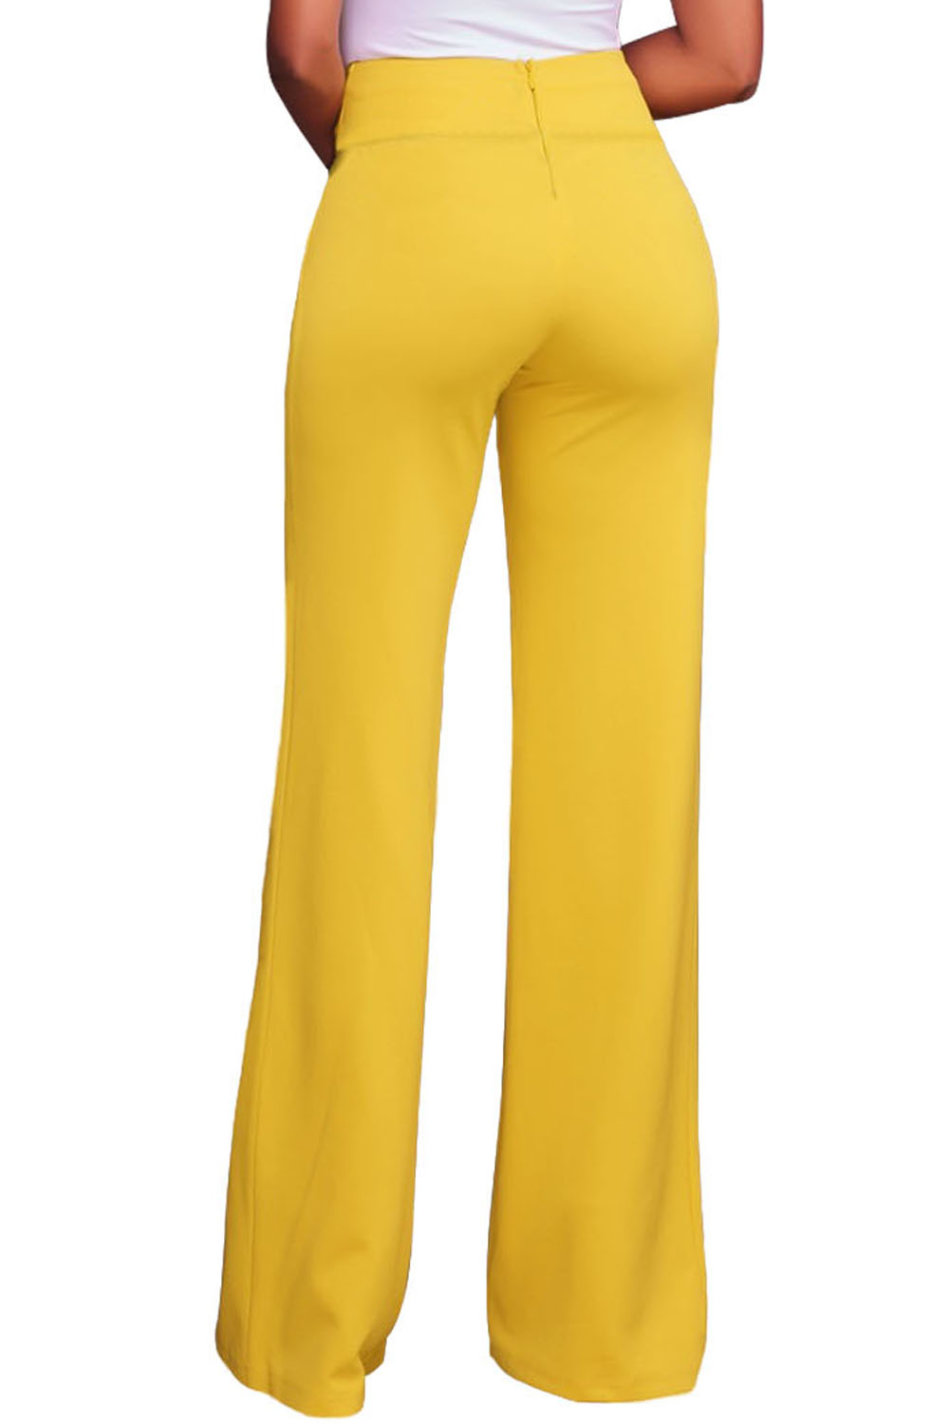 Women's Yellow Trouser & Wide-Leg Pants All Items (15) Shop Your Store Sort by: Sorted just for you (after a quick quiz) Sort by customer rating Sort by featured Sort by newest Sort by price: low to high Sort by price: high to low Sort by percent off.